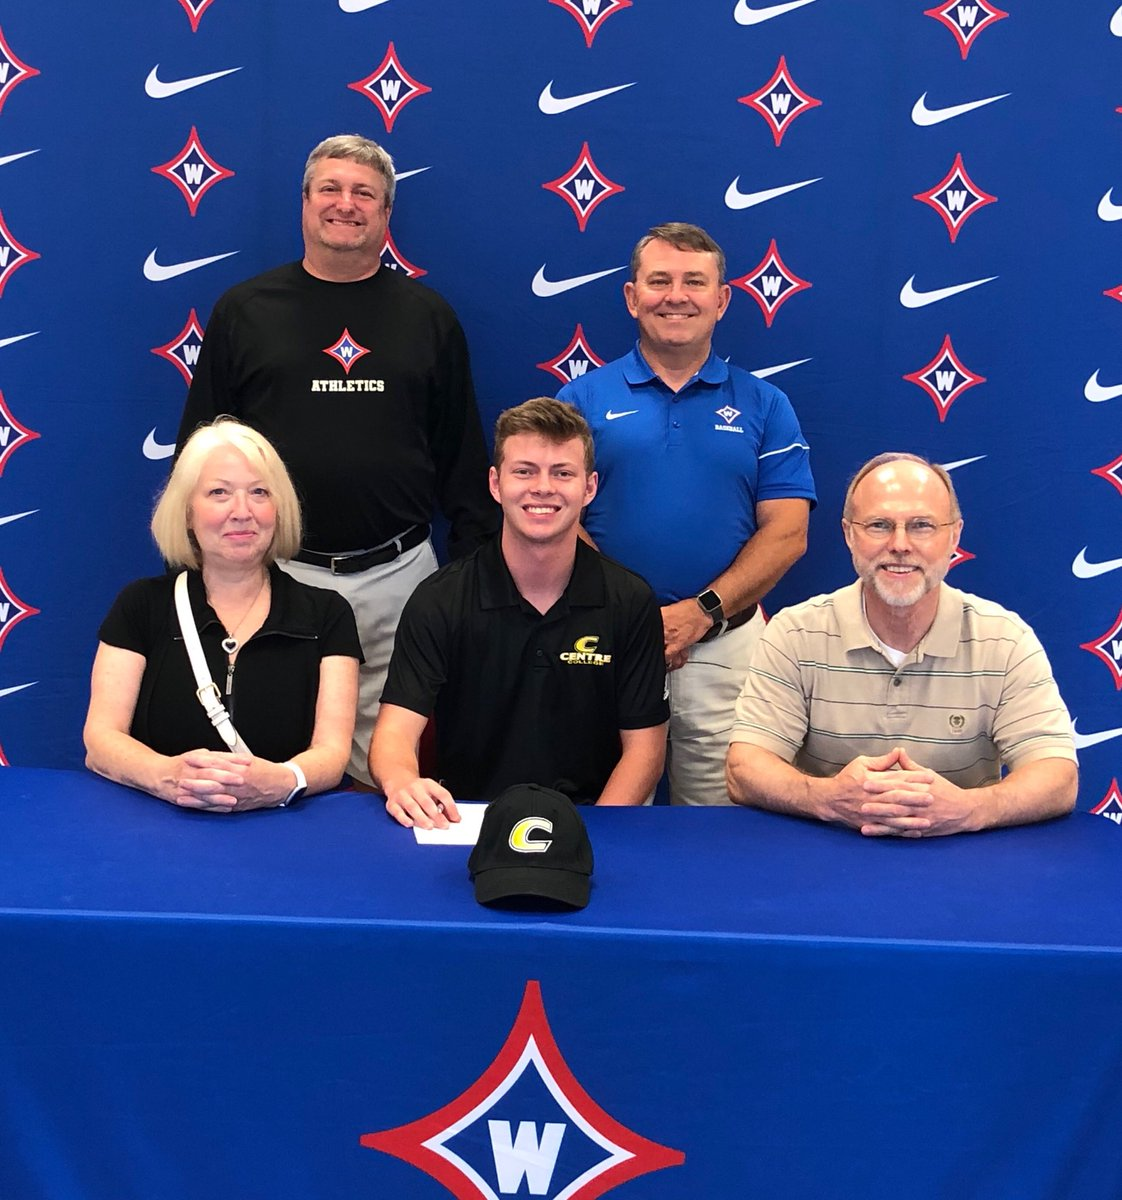 Congrats to baseball player David Sickles on his recent signing with Centre College. Go Raiders and Go Colonels!